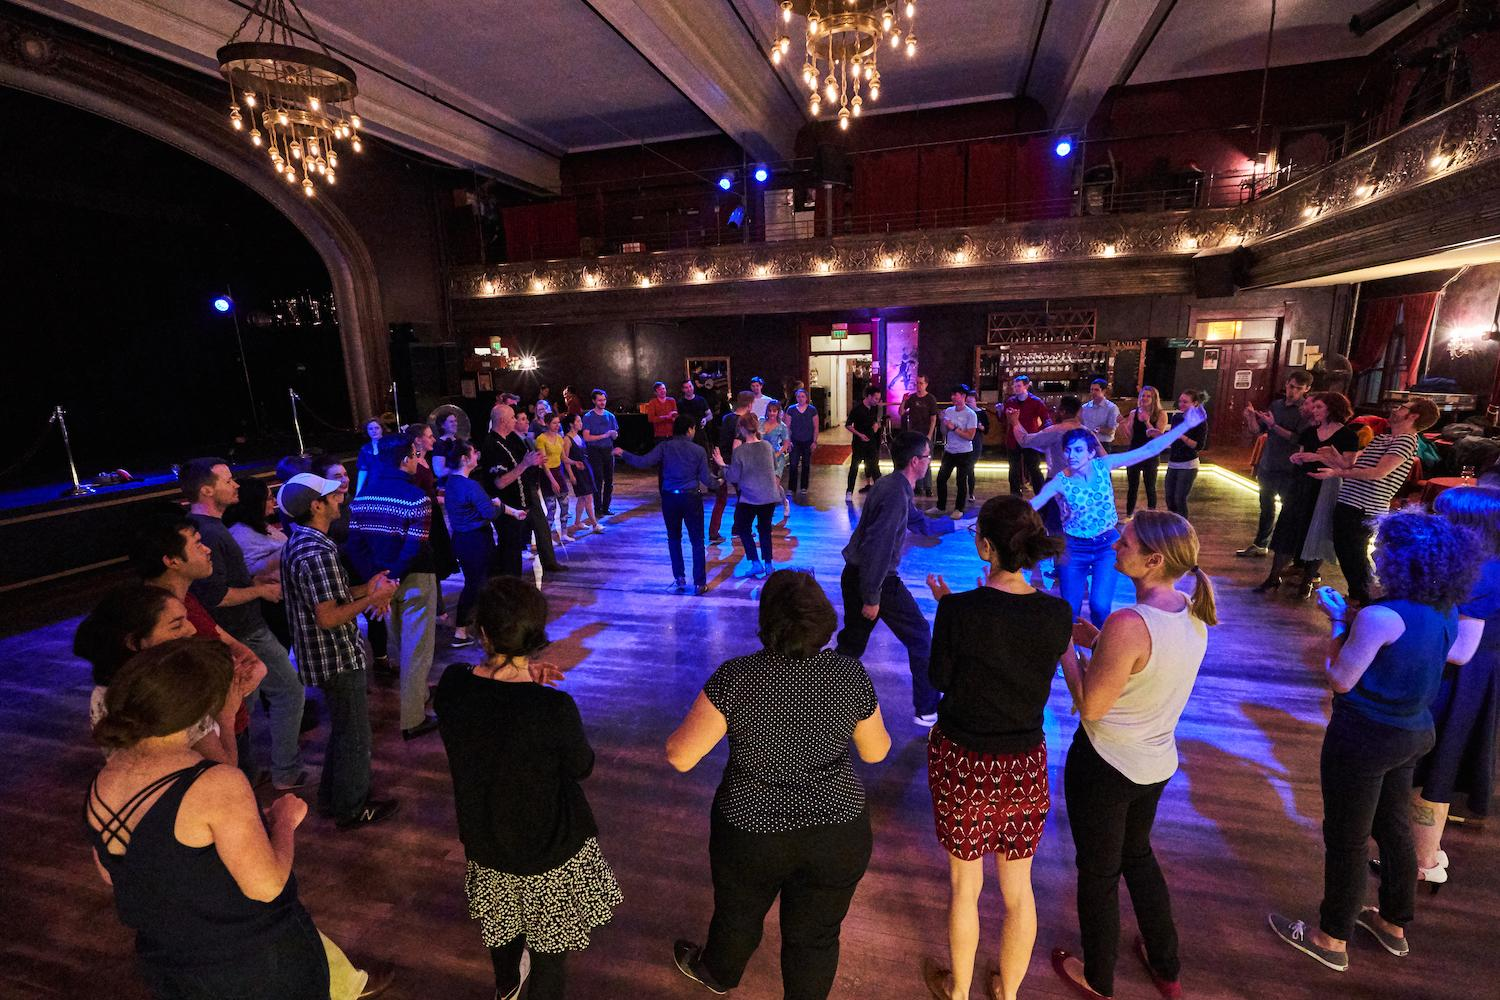 It's time to dance folks! (Image courtesy of Century Ballroom).